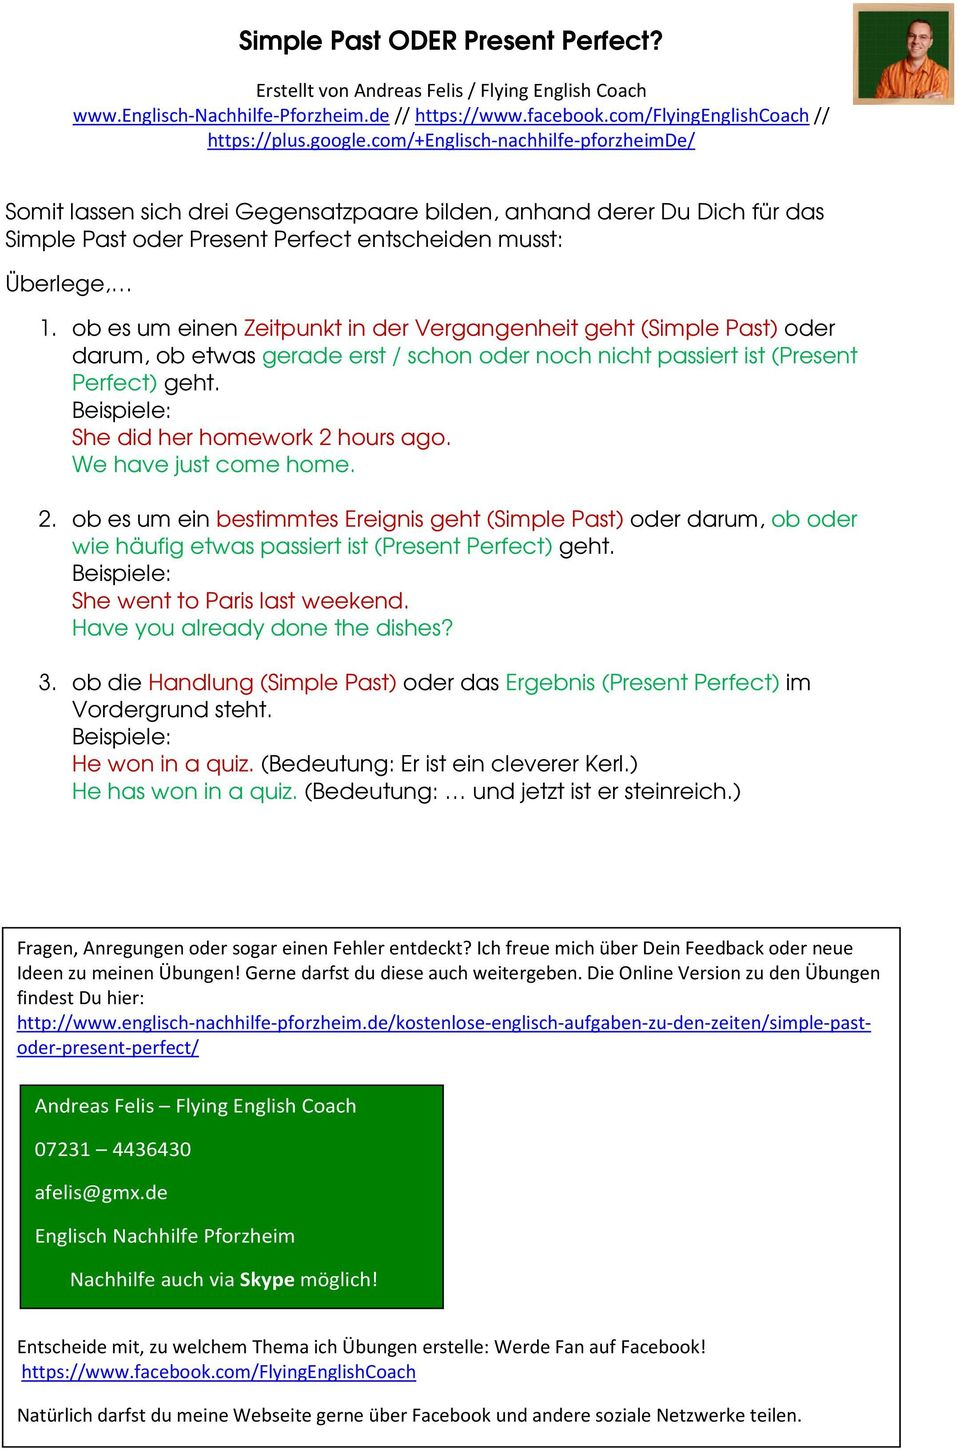 Simple Past oder Present Perfect? - PDF